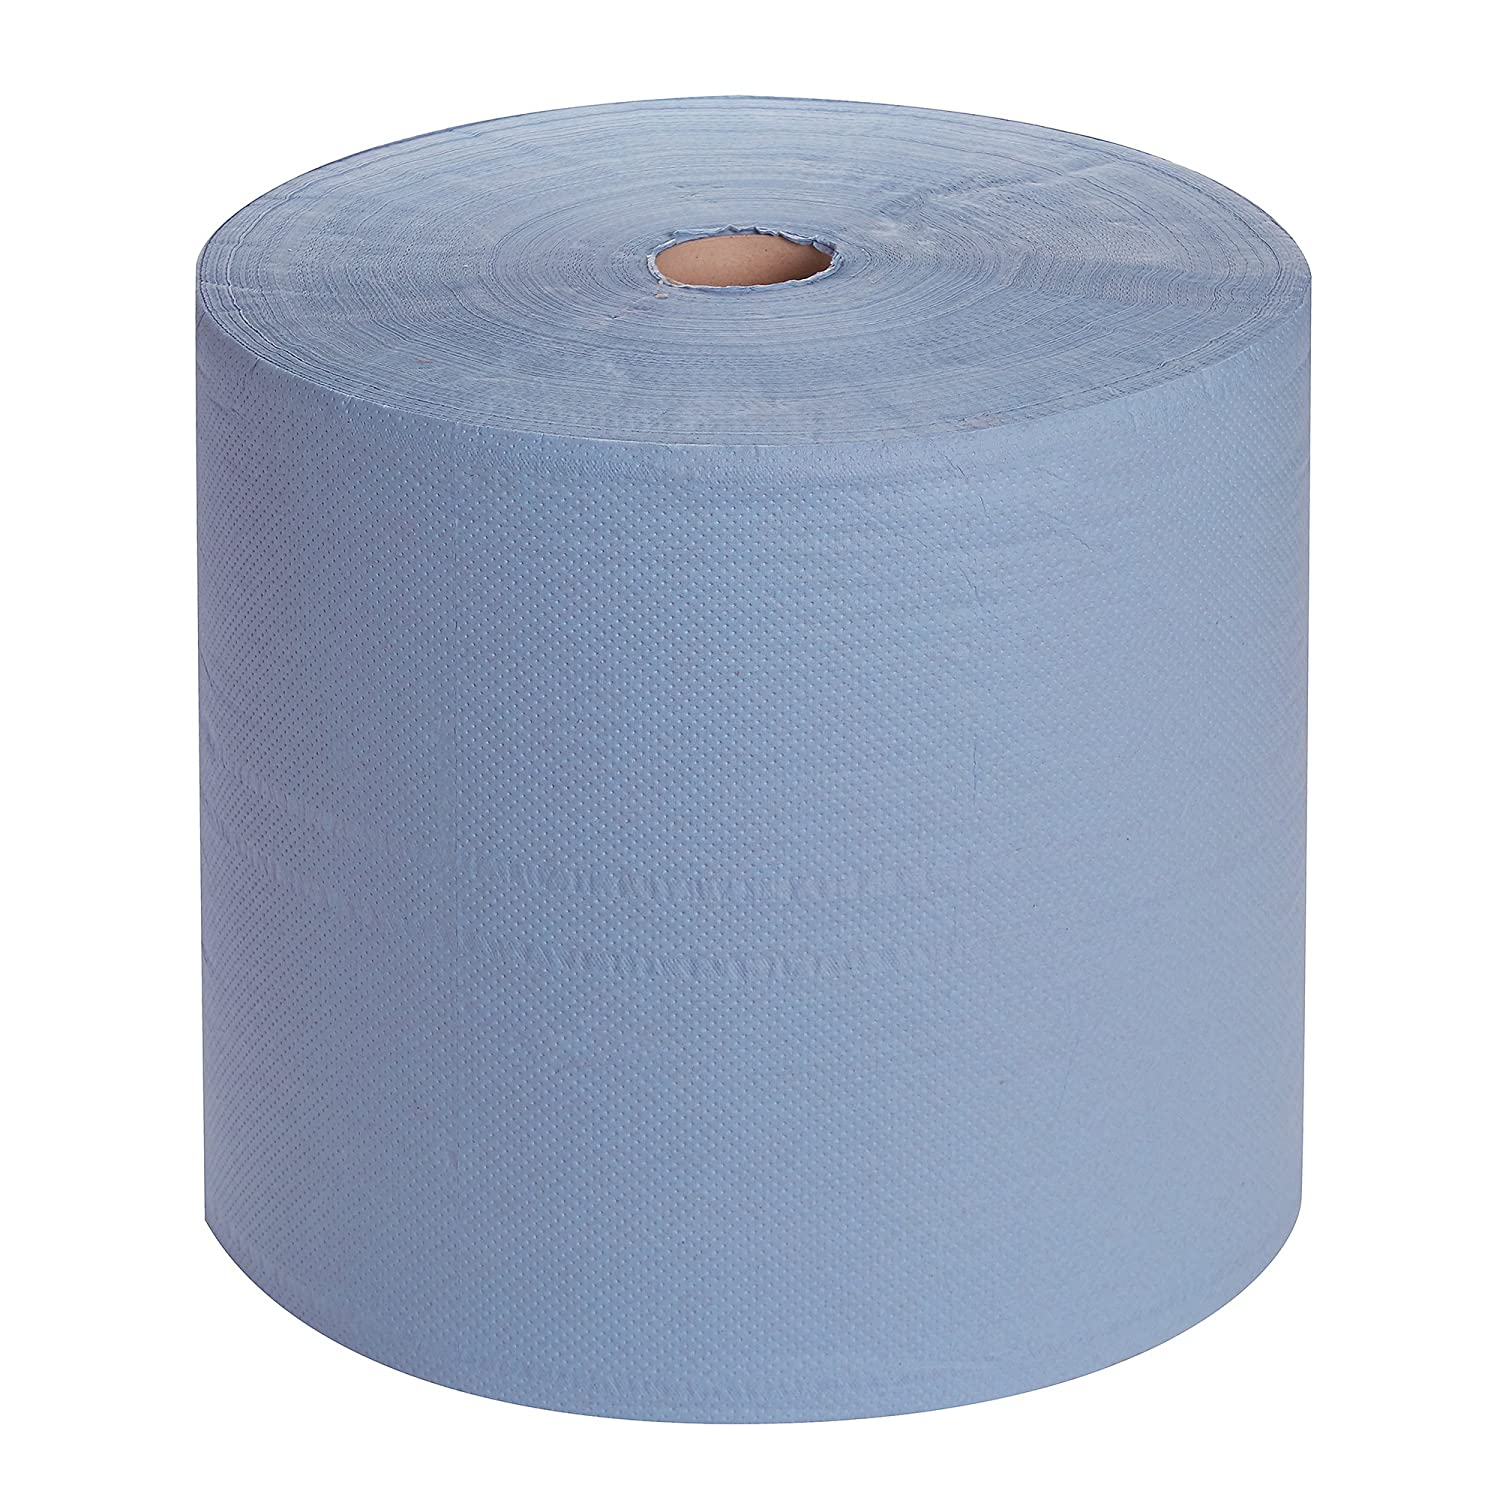 WYPALL* L10 Extra Wiper Small Roll 7123-12 rolls x 200 blue 1 ply sheets